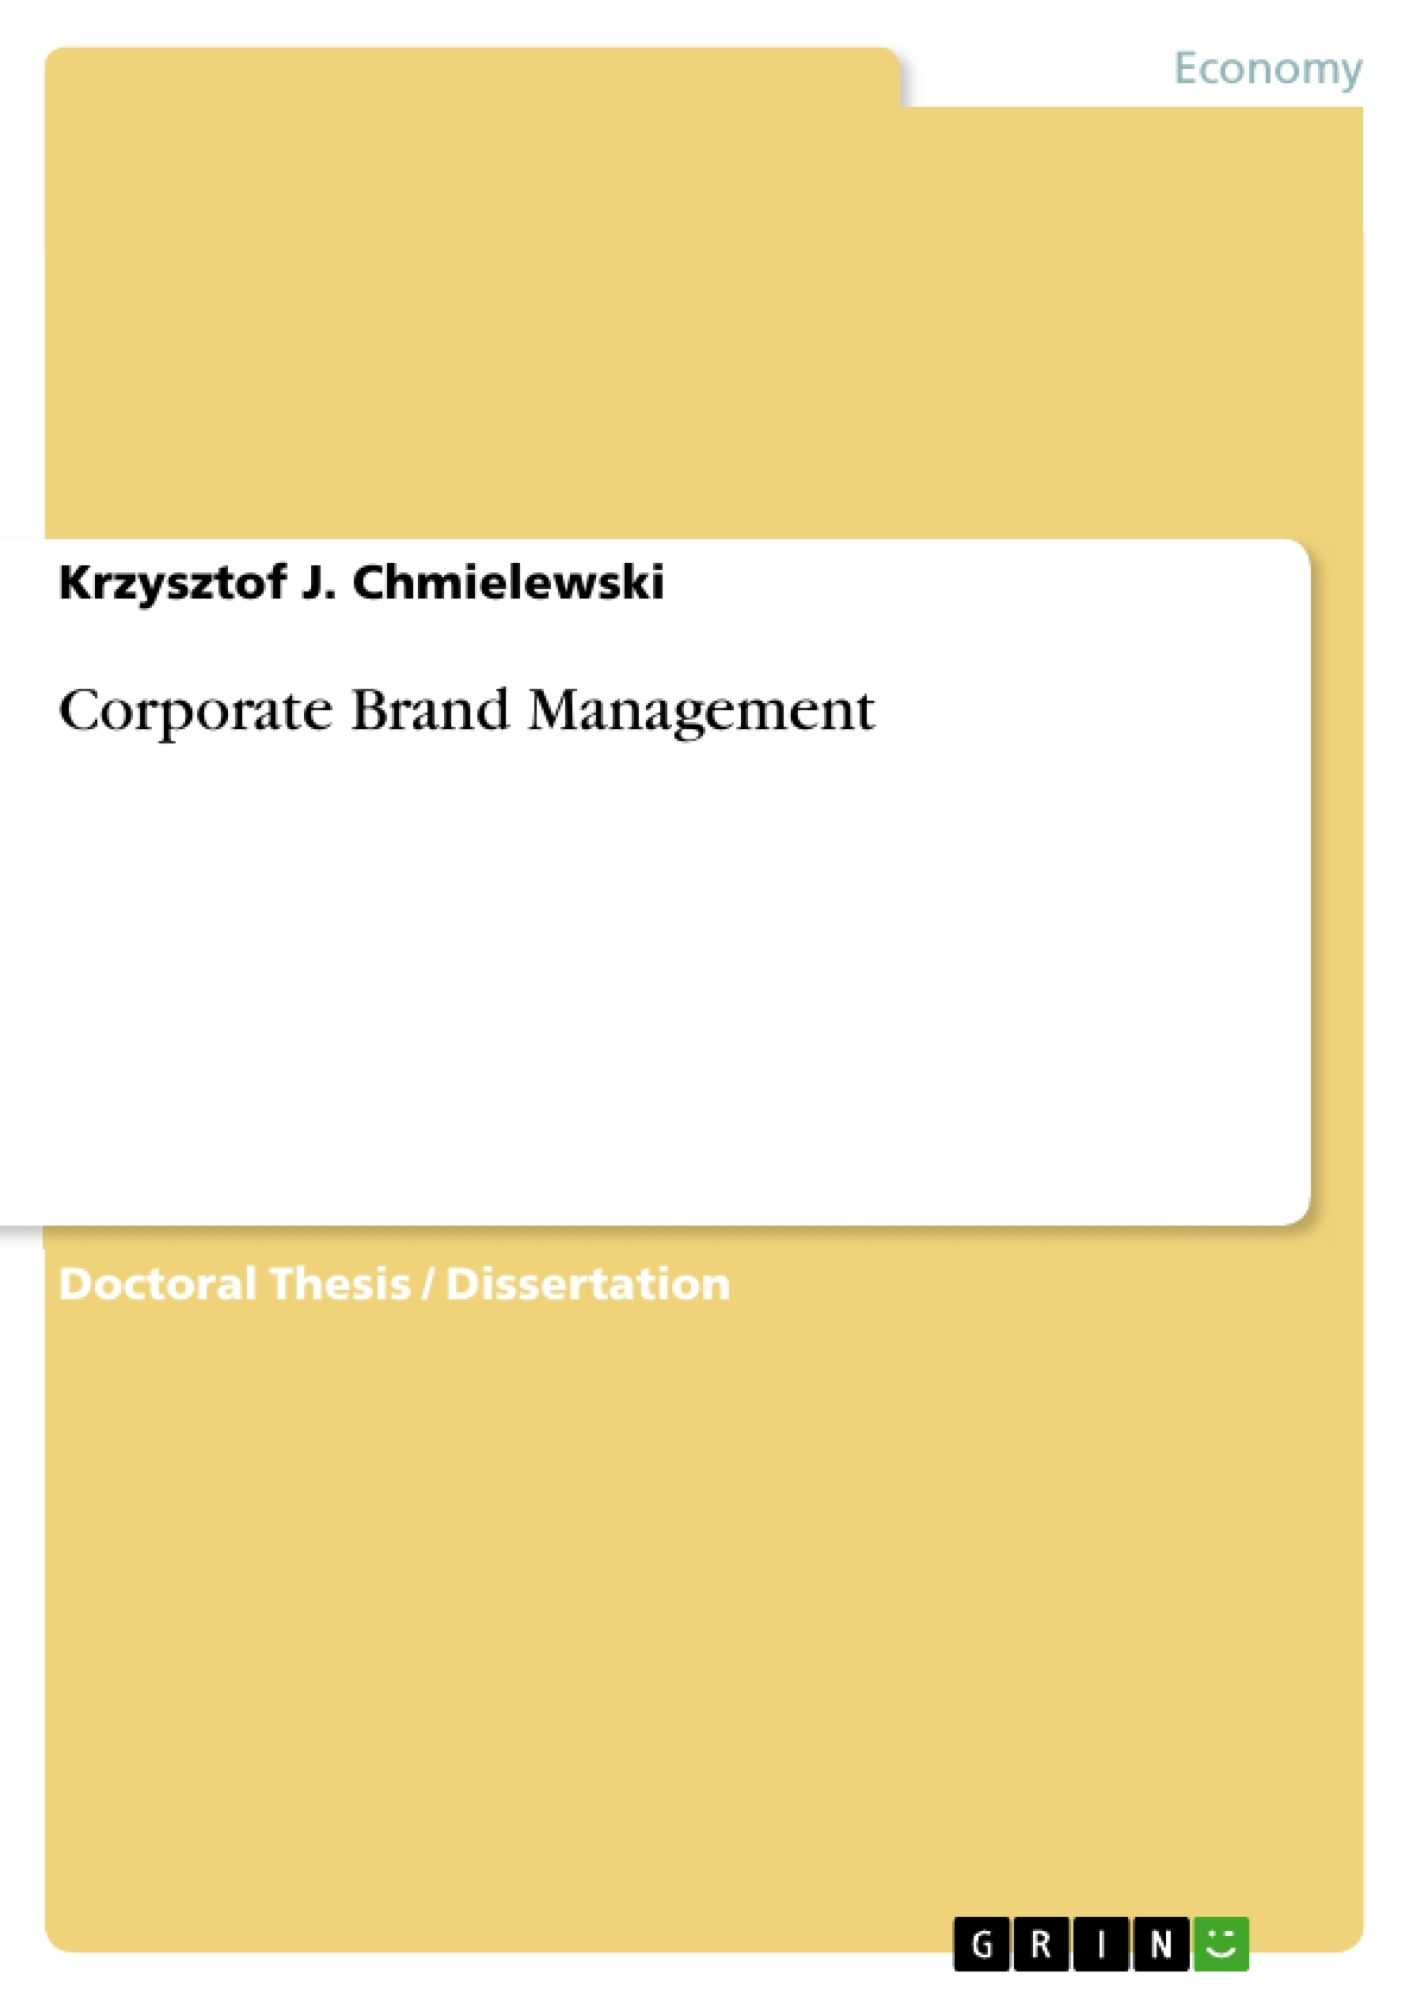 Title: Corporate Brand Management